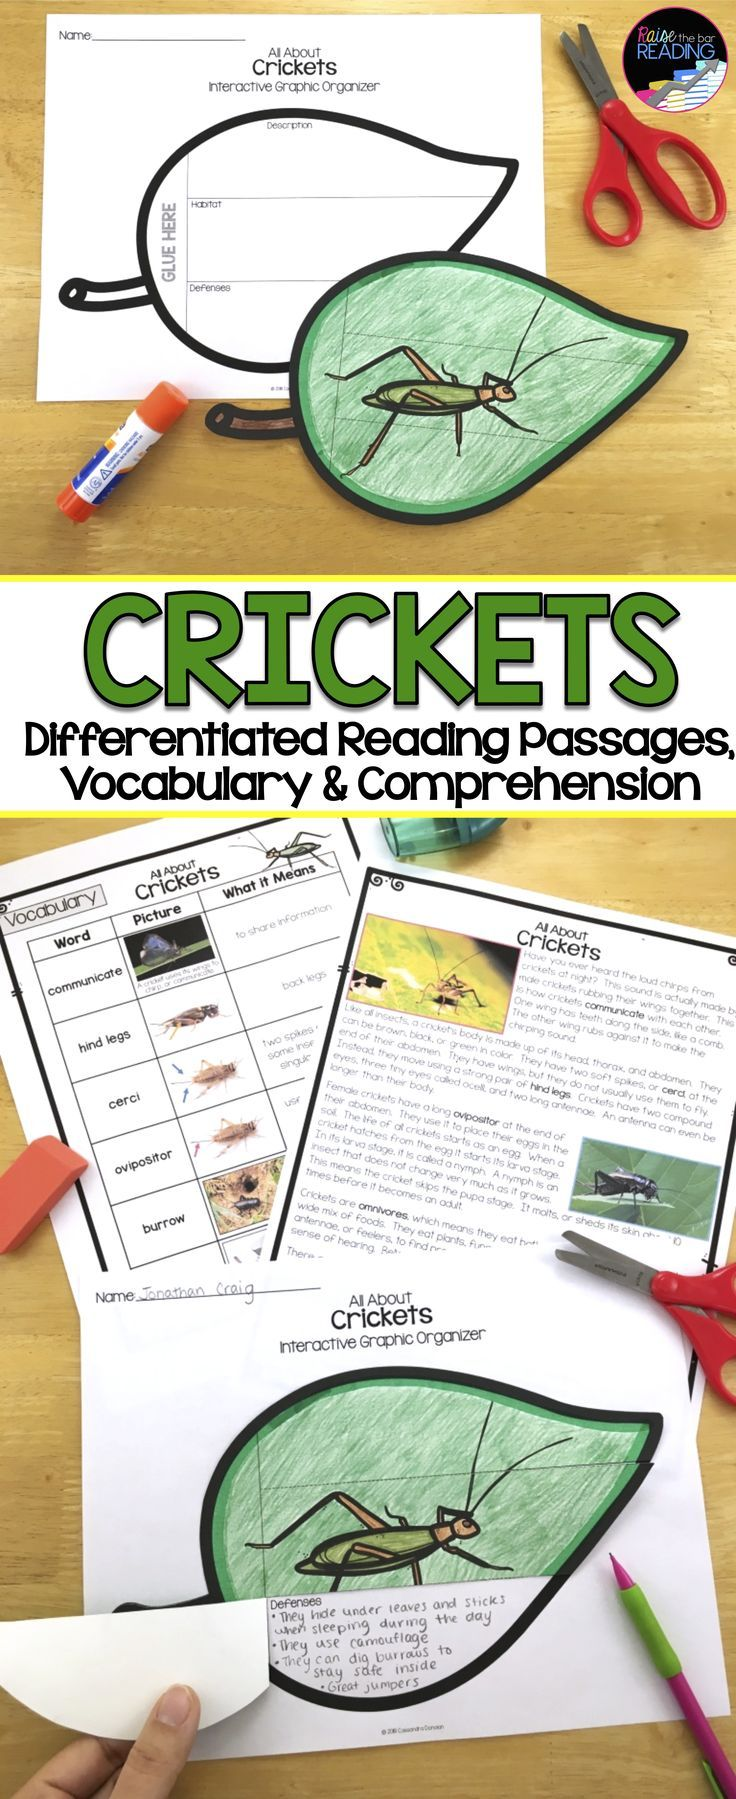 Crickets Differentiated Reading Passages Grades 2 5 Perfect For Your Insects Unit Gu Differentiated Reading Passages Differentiated Reading Reading Passages [ 1799 x 736 Pixel ]